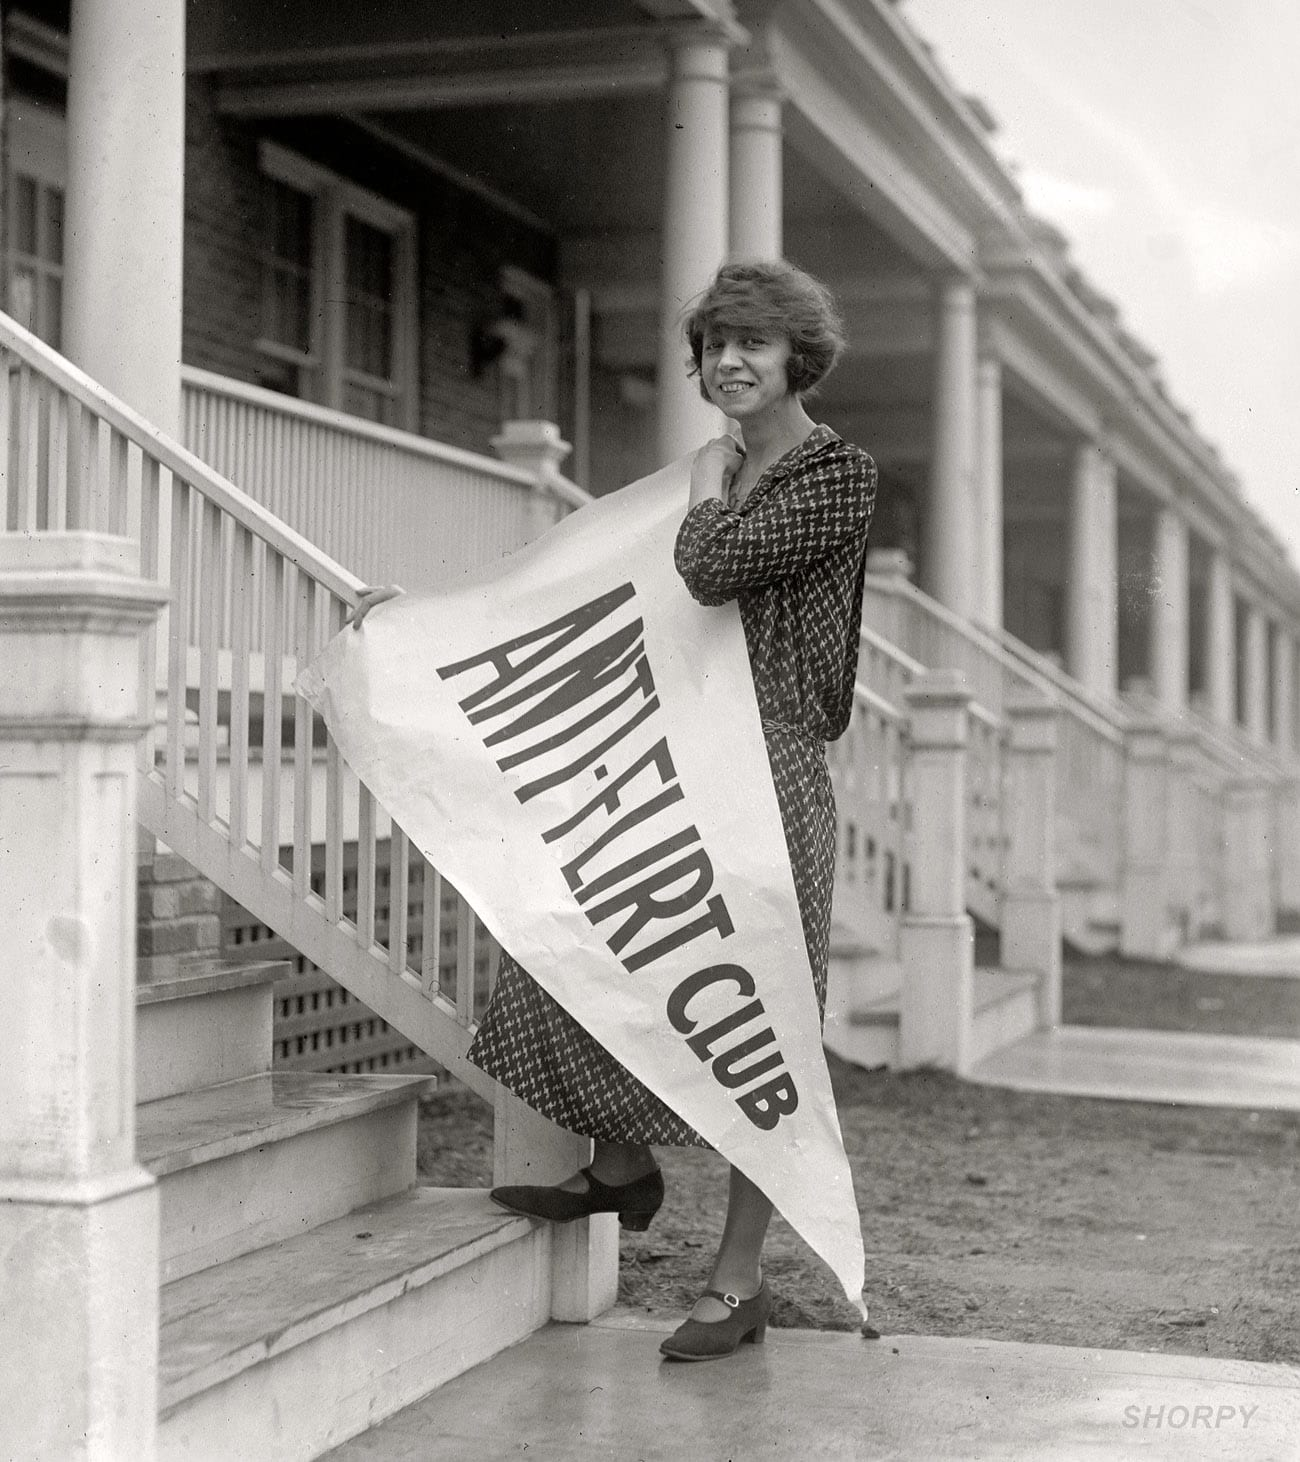 "February 27, 1923. ""Miss Alice Reighly, 1409 Harvard Street, president of Anti-Flirt Club, which has just been organized in Washington, D.C., and will launch an 'Anti-Flirt Week' beginning March 4. The club is composed of young women and girls who have been embarrassed by men in automobiles and on street corners."" National Photo Company Collection glass negative. (Shorpy)"